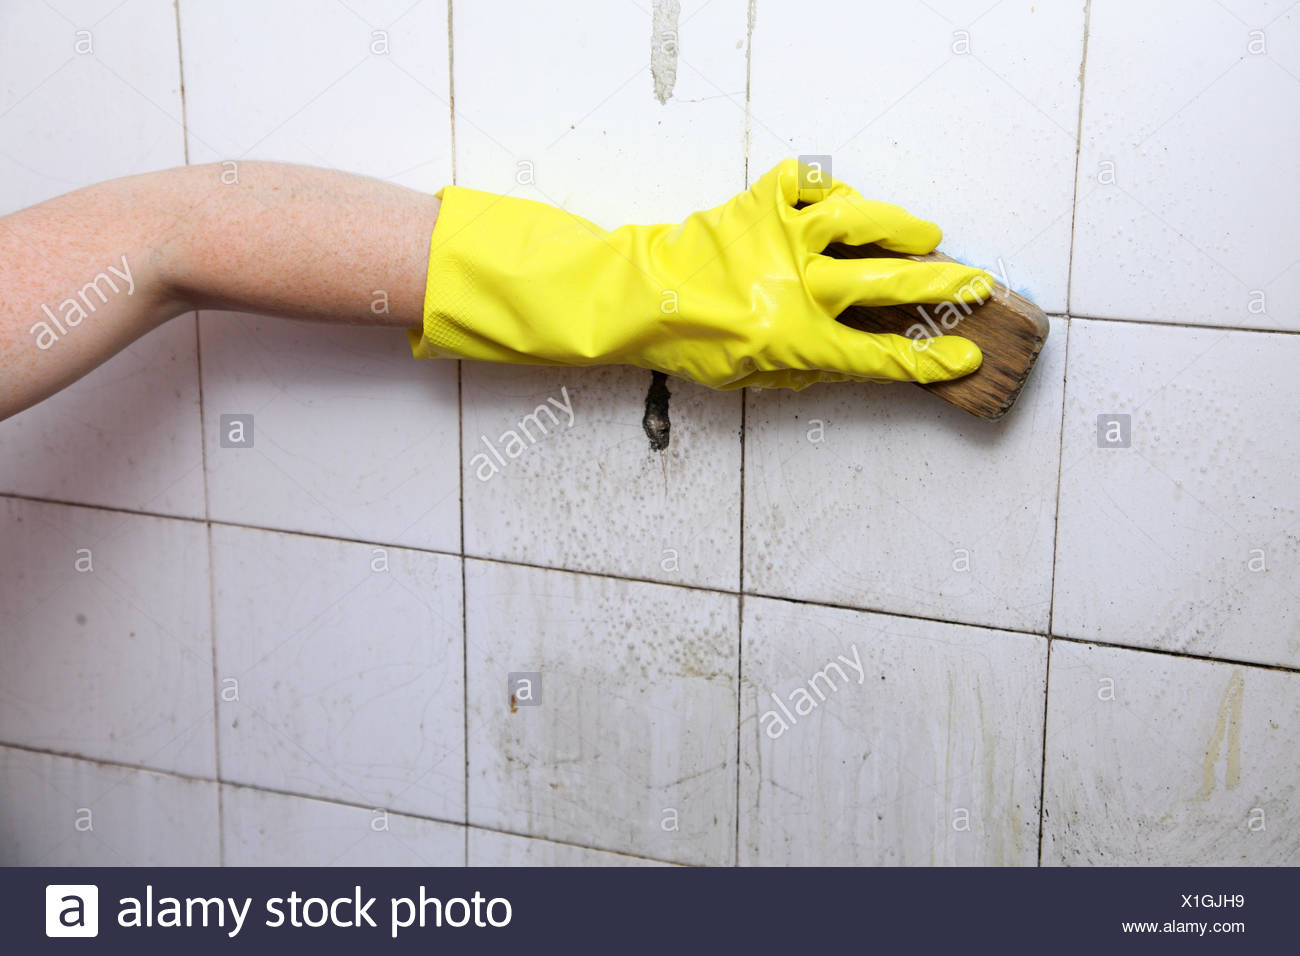 Cleaning of dirty old tiles in a bathroom Stock Photo: 276346373 - Alamy